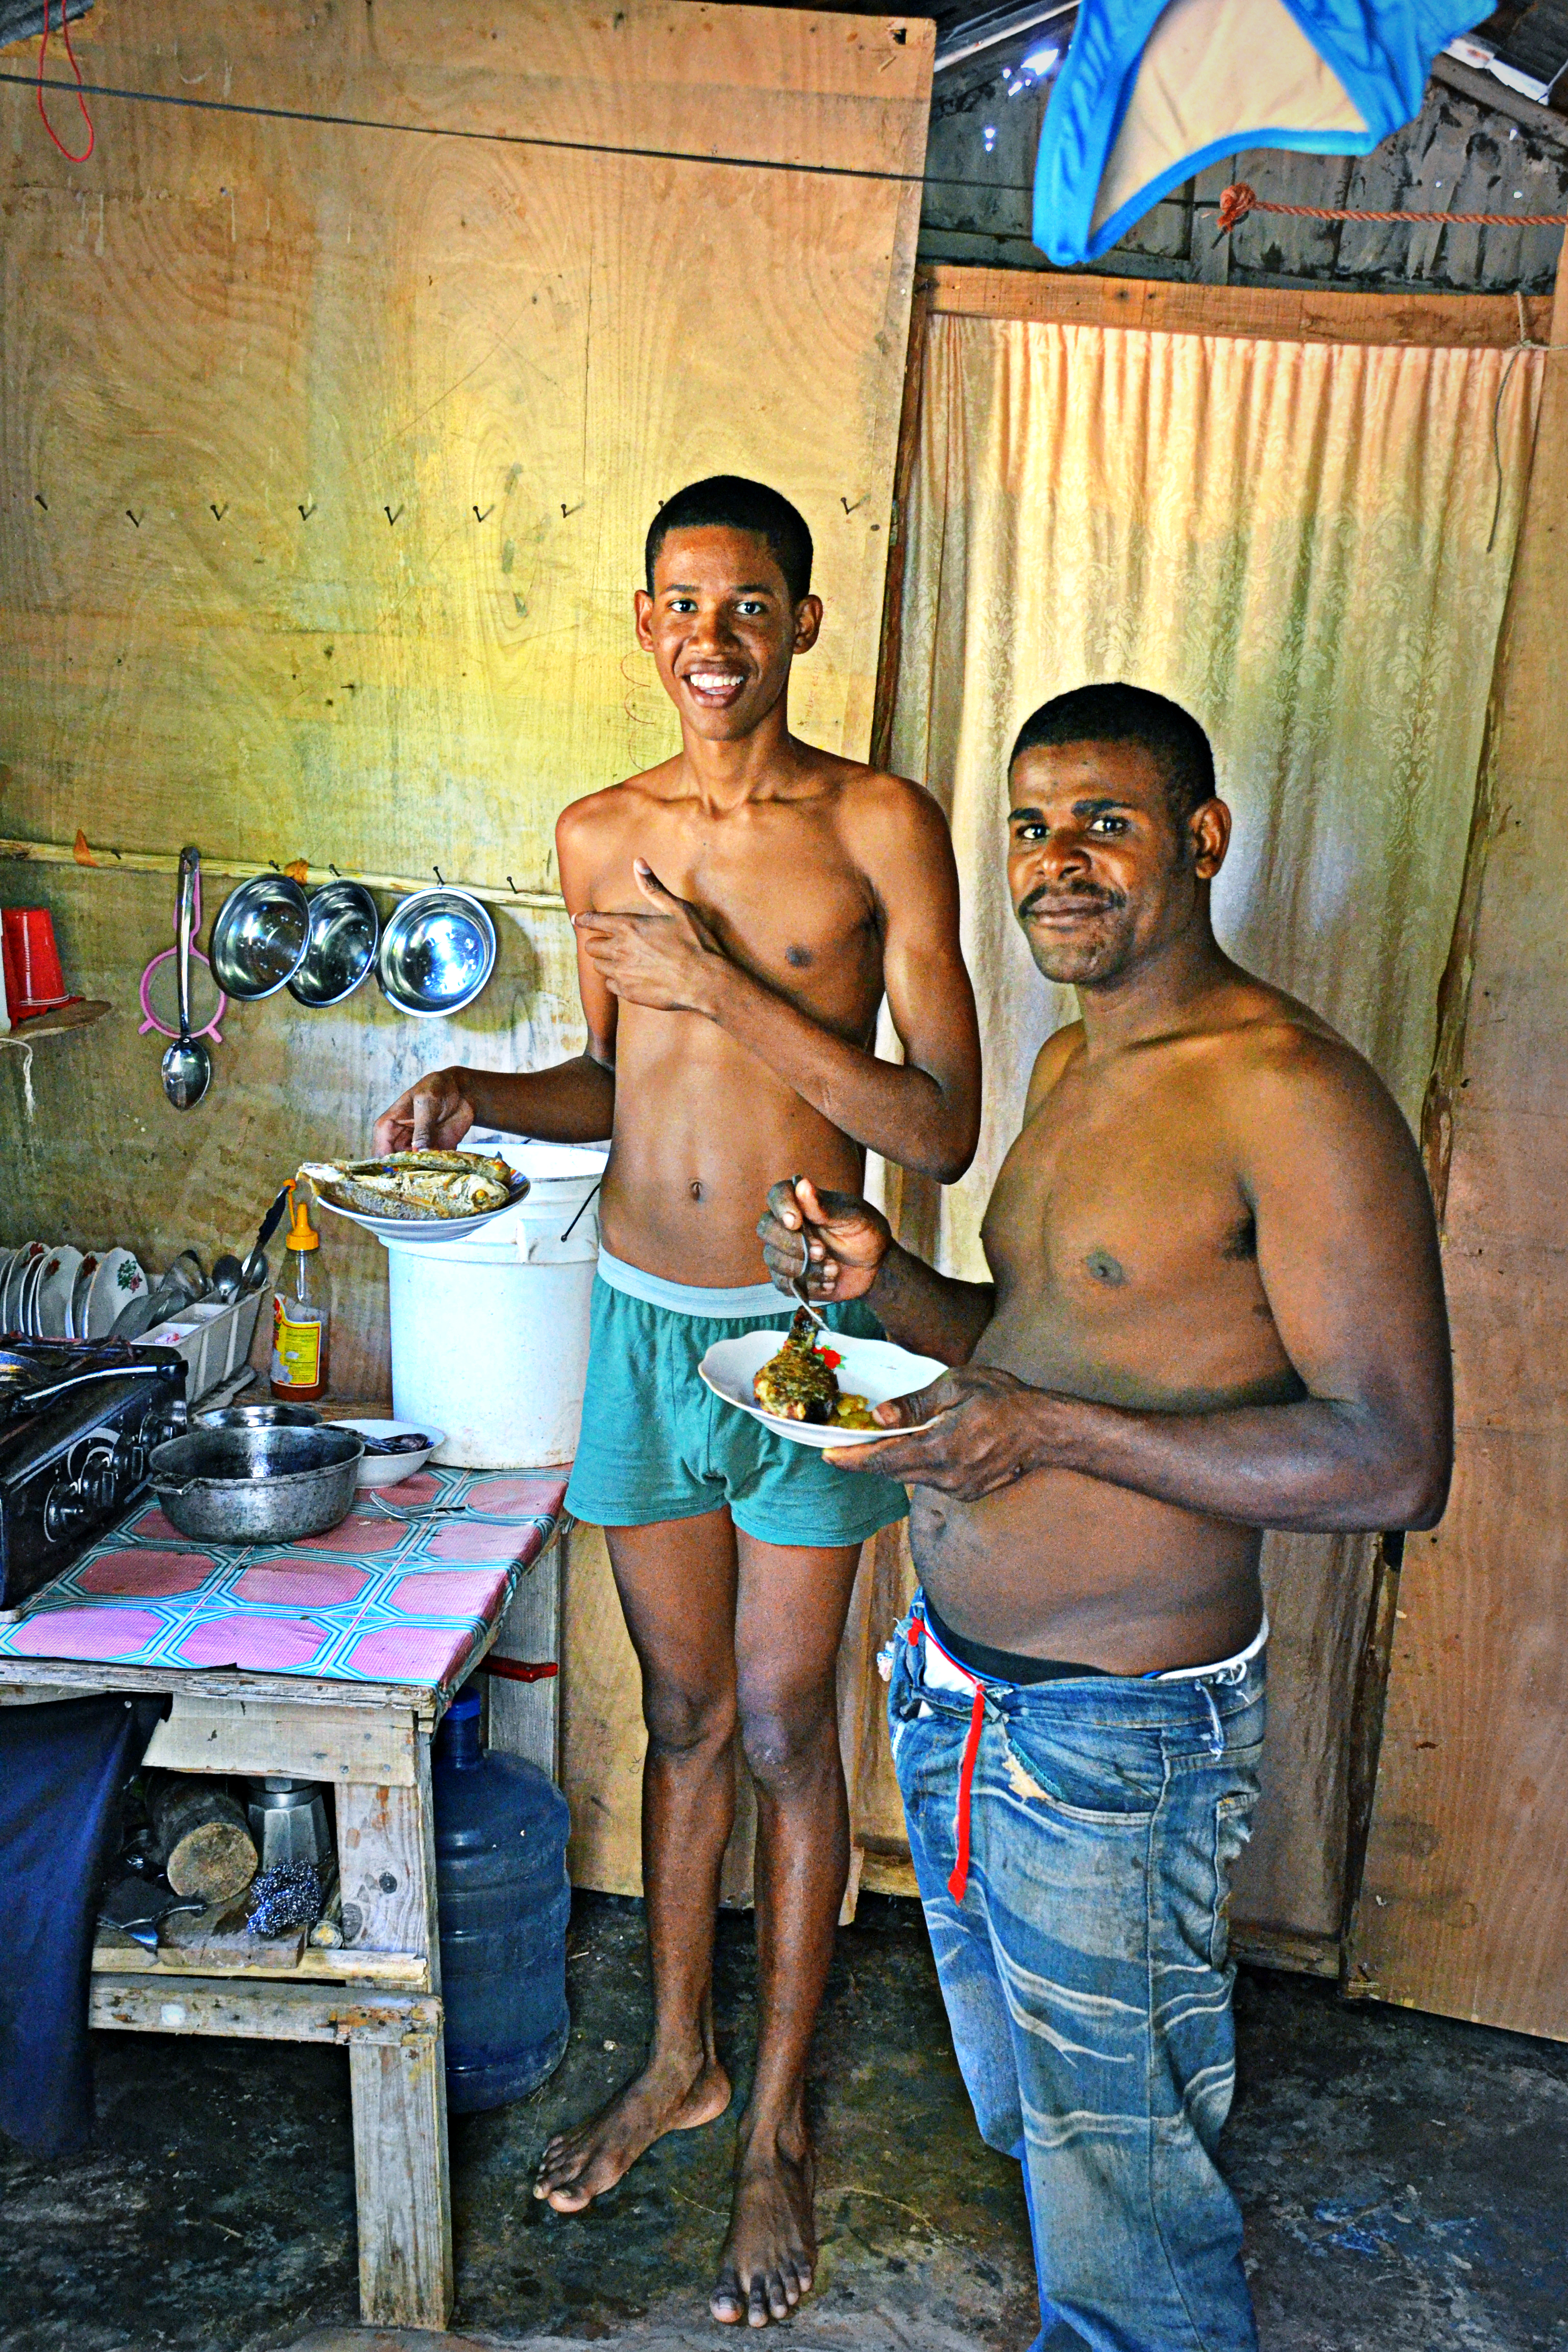 Naked dominican guys